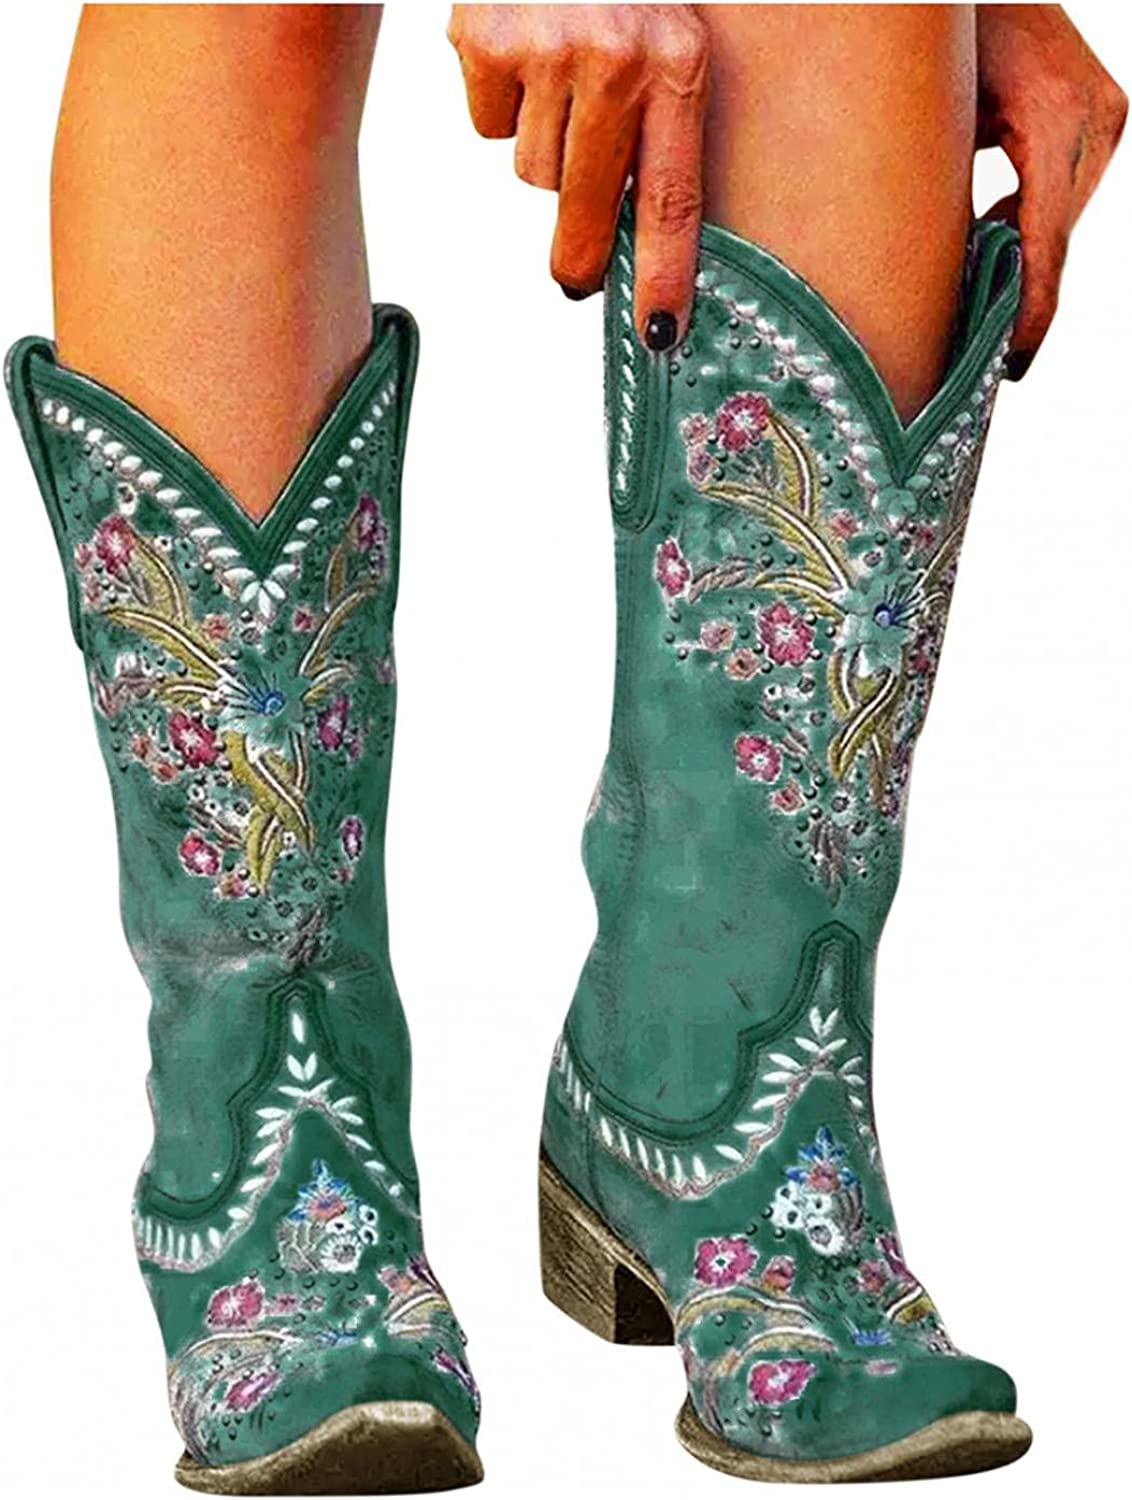 Hbeylia Vintage Western Cowboy Cowgirls Boots For Women Ladies Boho Retro Flower Embroidered Pointed Toe Chunky Block Mid Heels Wide Mid Calf Knight Riding Boots Bohemian Dress Short Ankle Booties